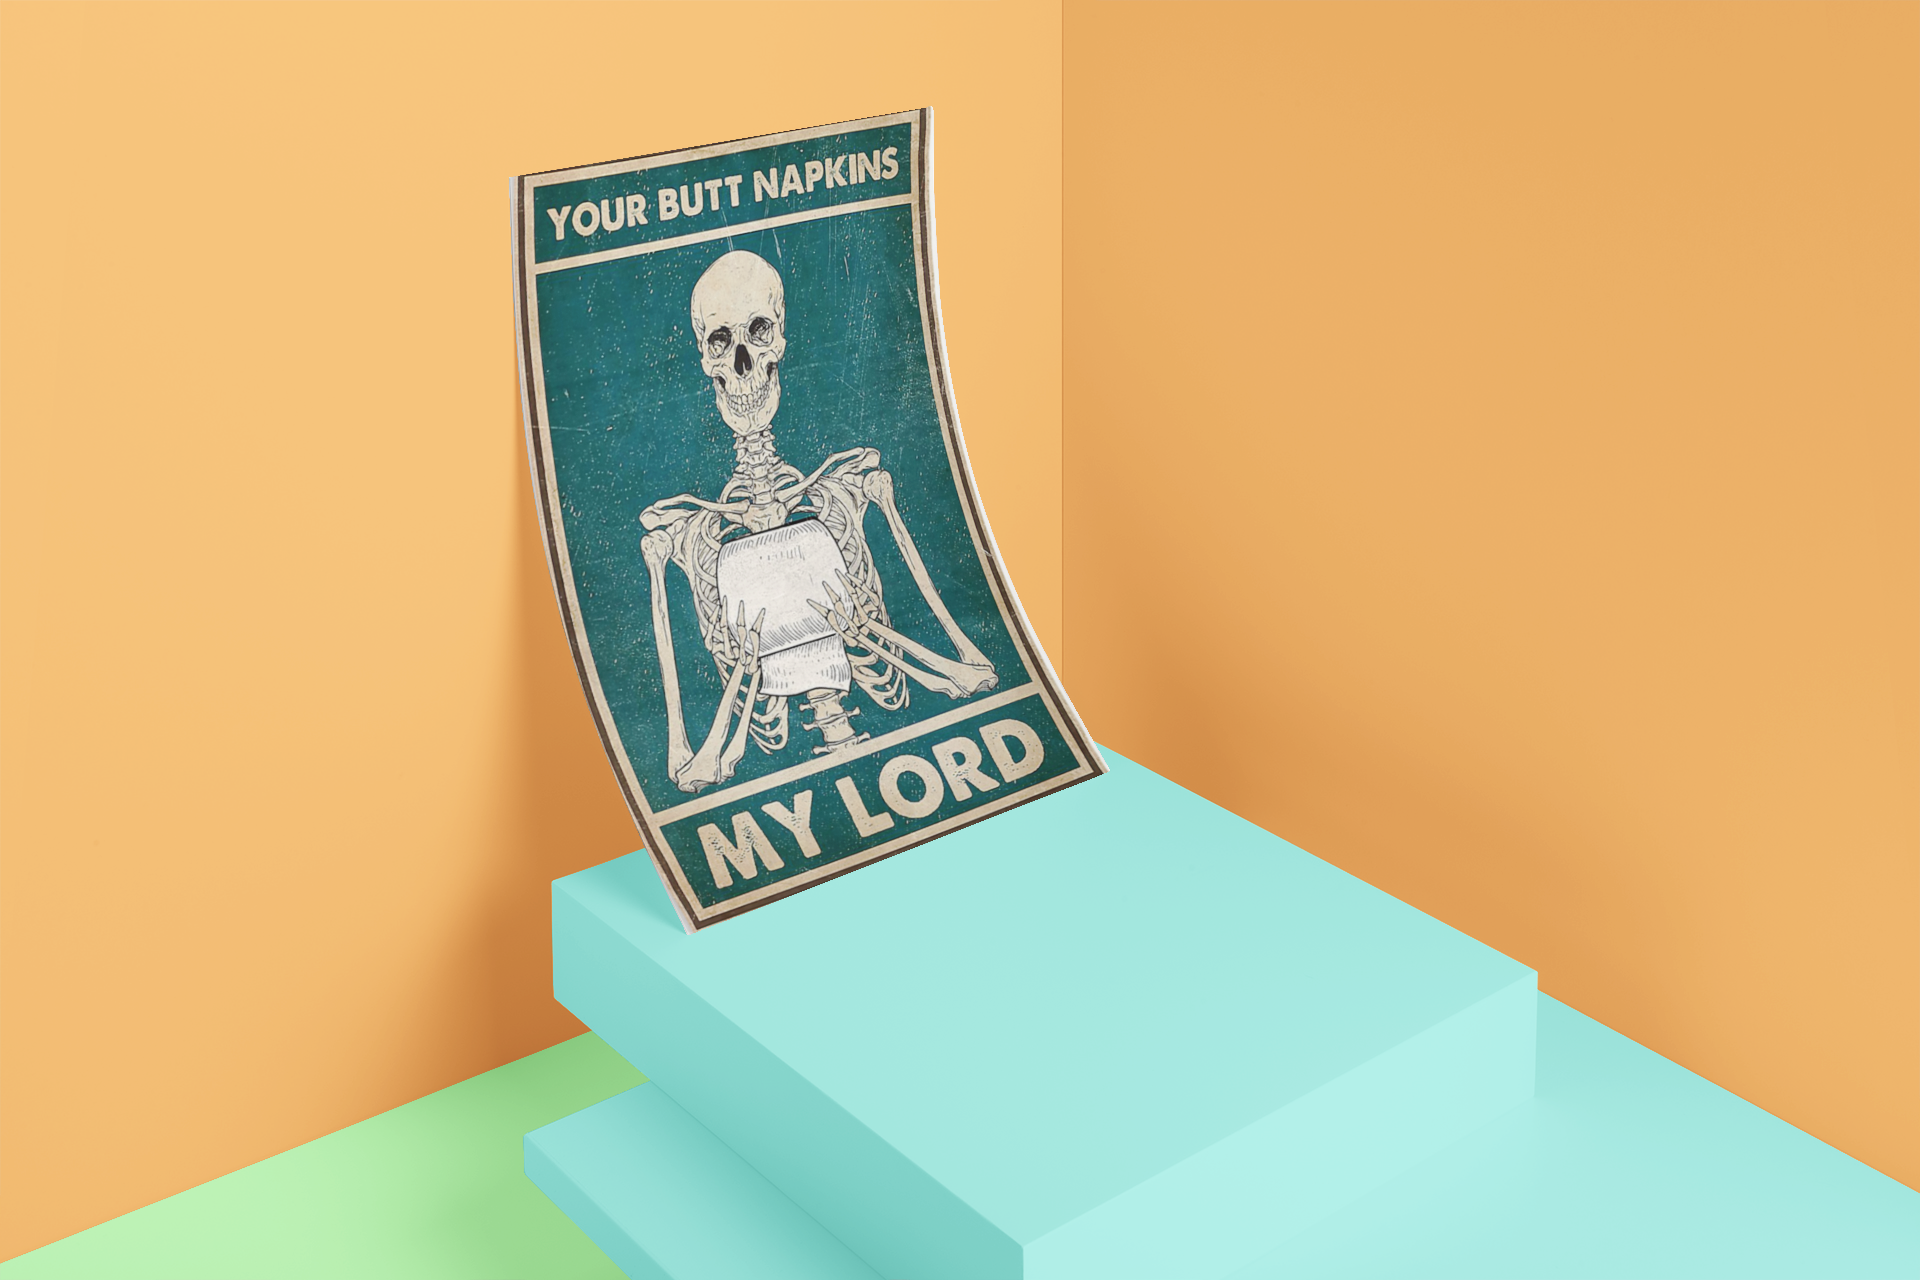 Skeleton your butt napkins my love poster